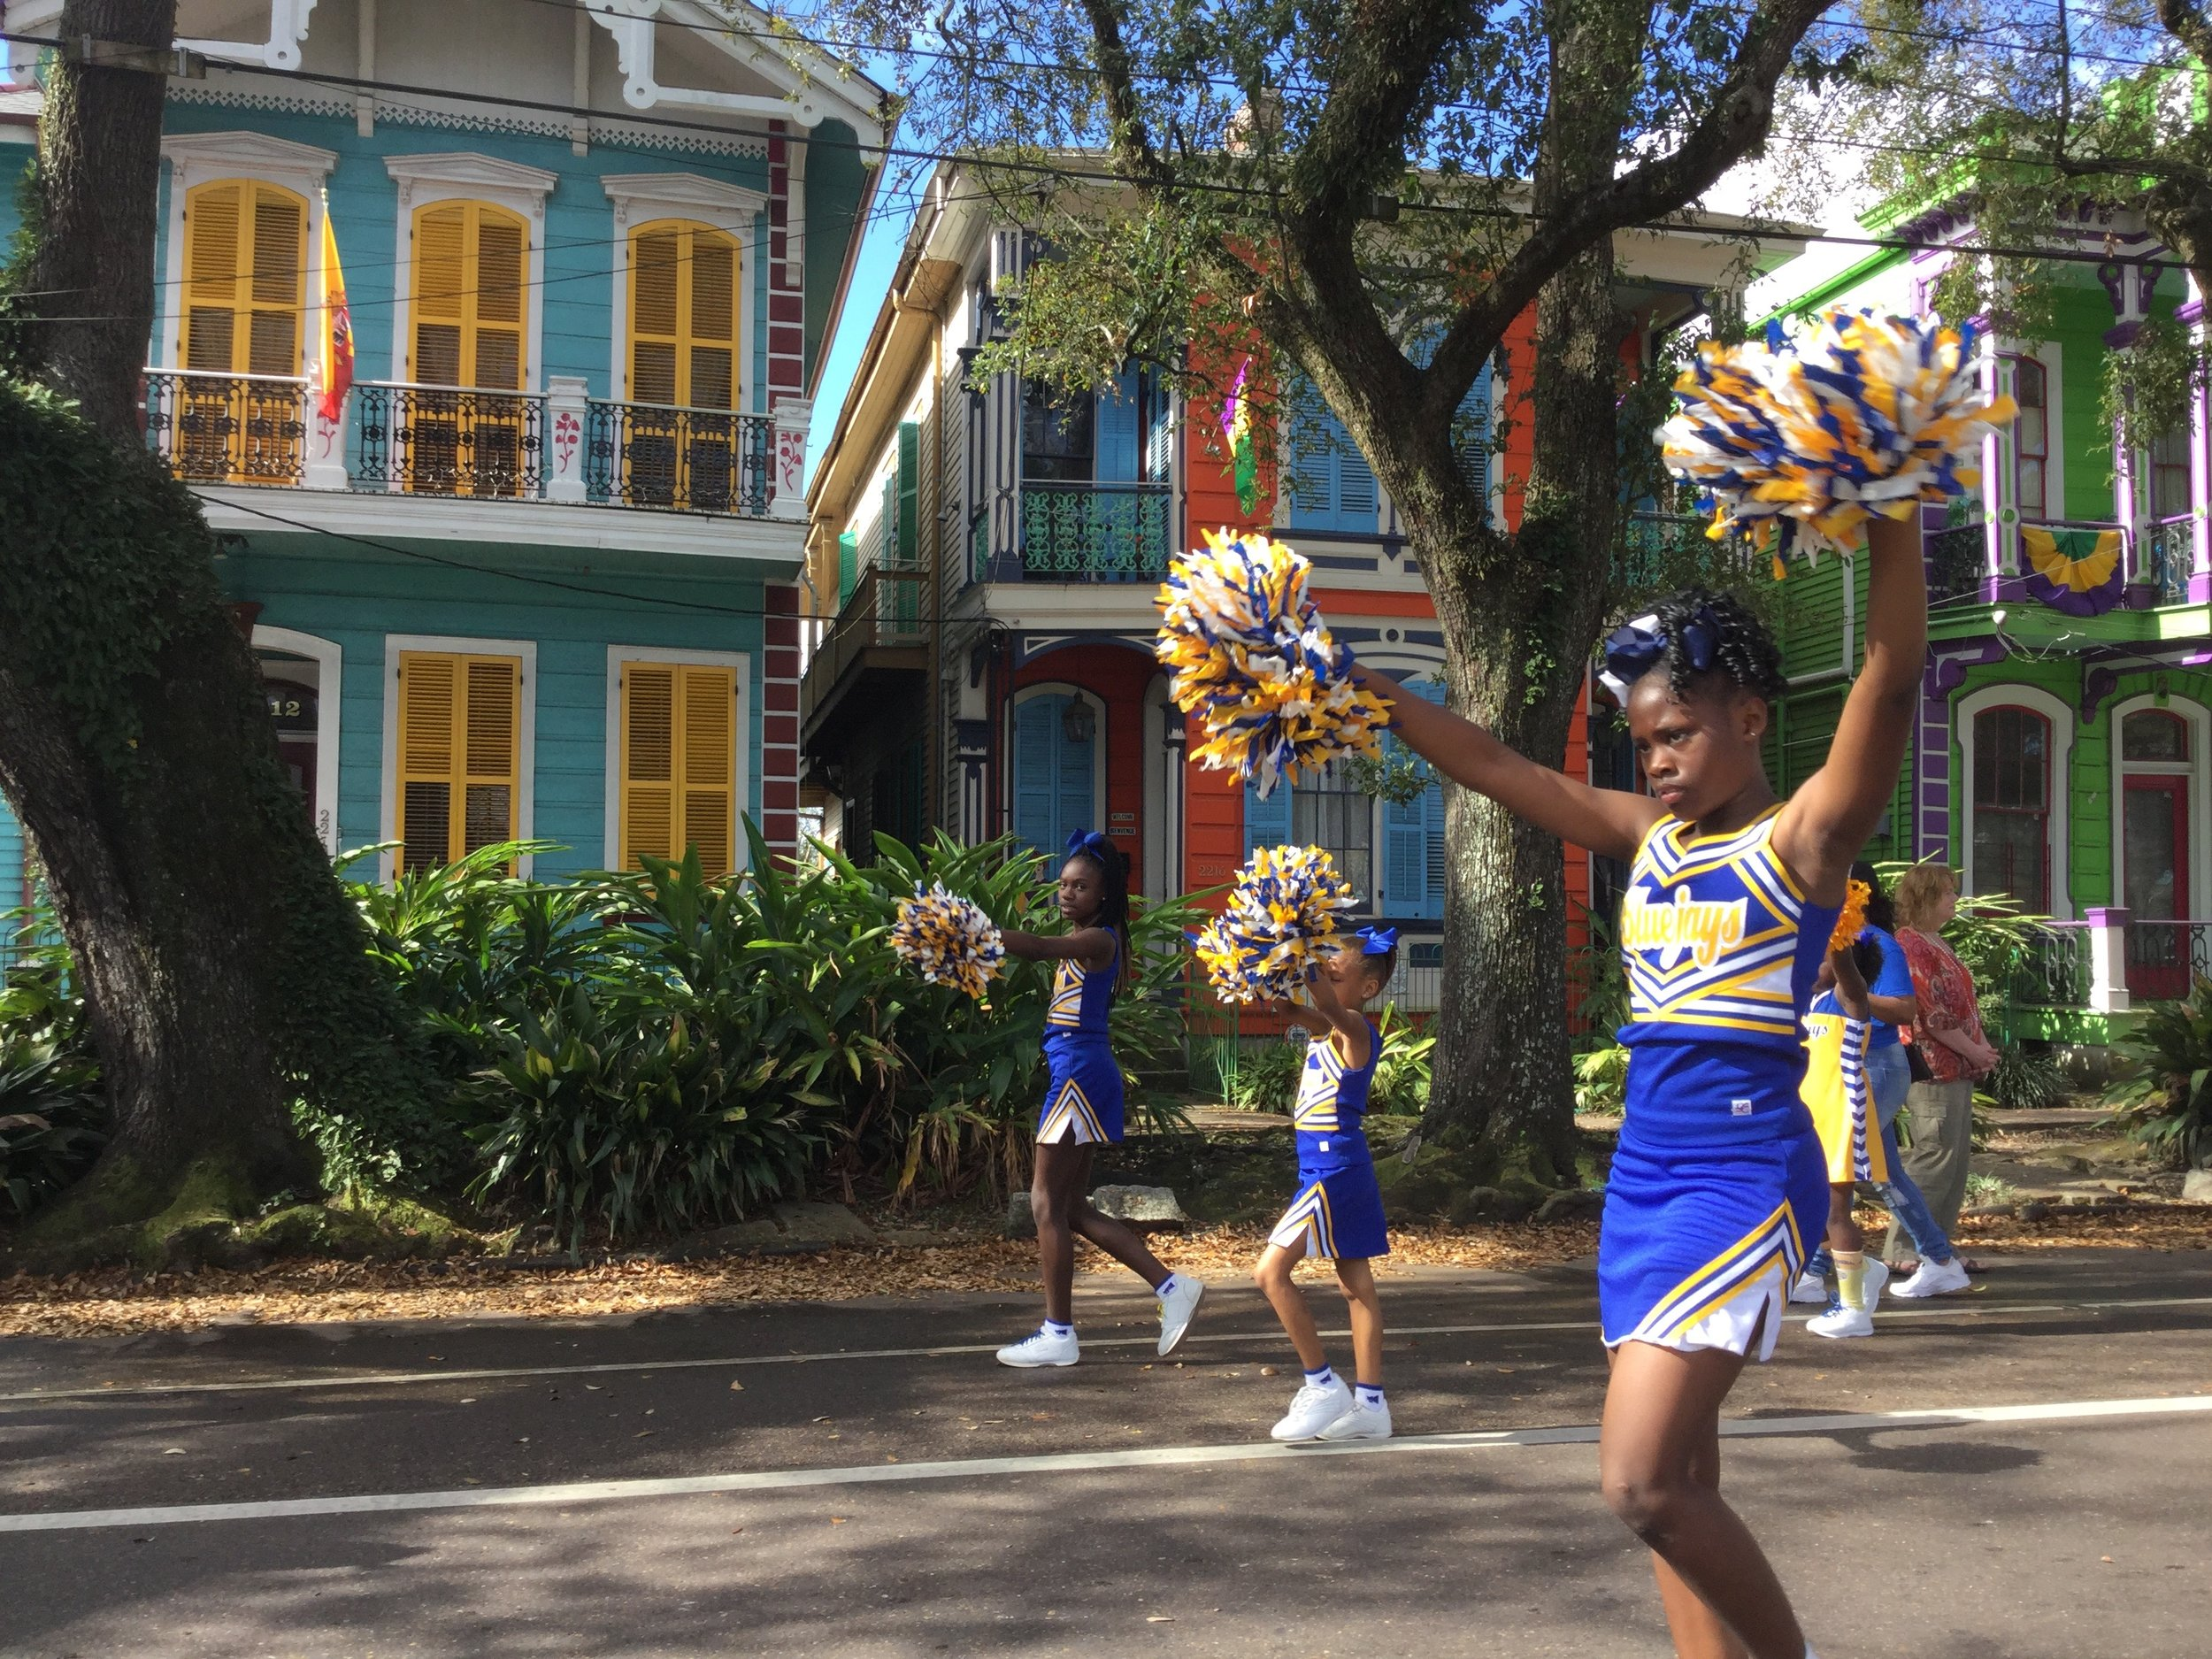 Every day is a parade on Esplanade Avenue in New Orleans